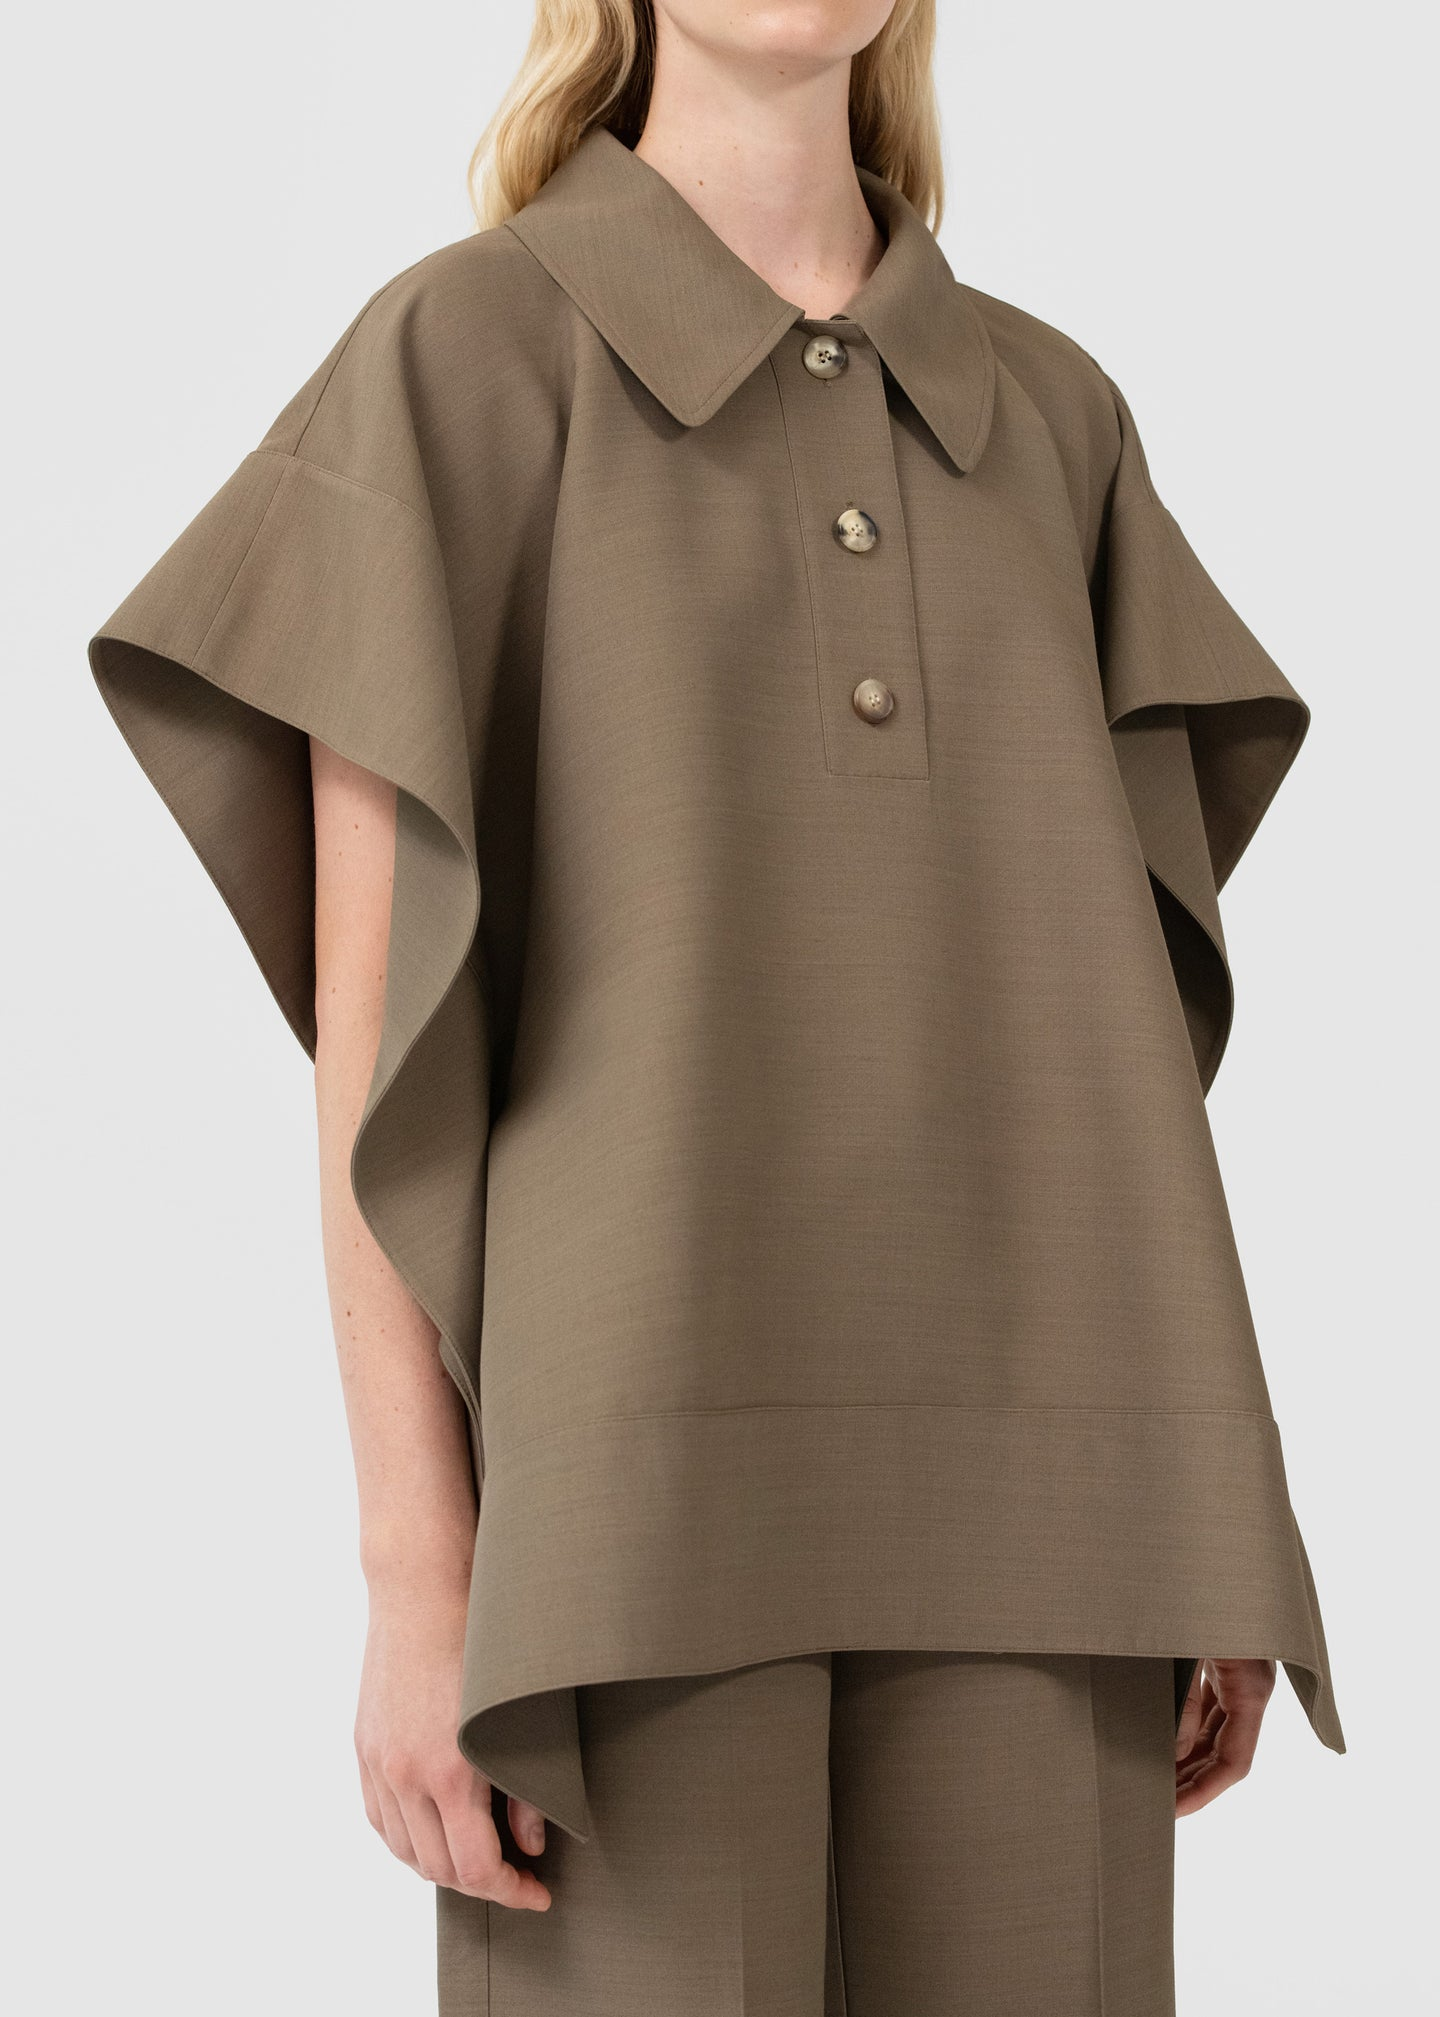 CO - Flounce Hem Polo In Viscose Wool - Taupe